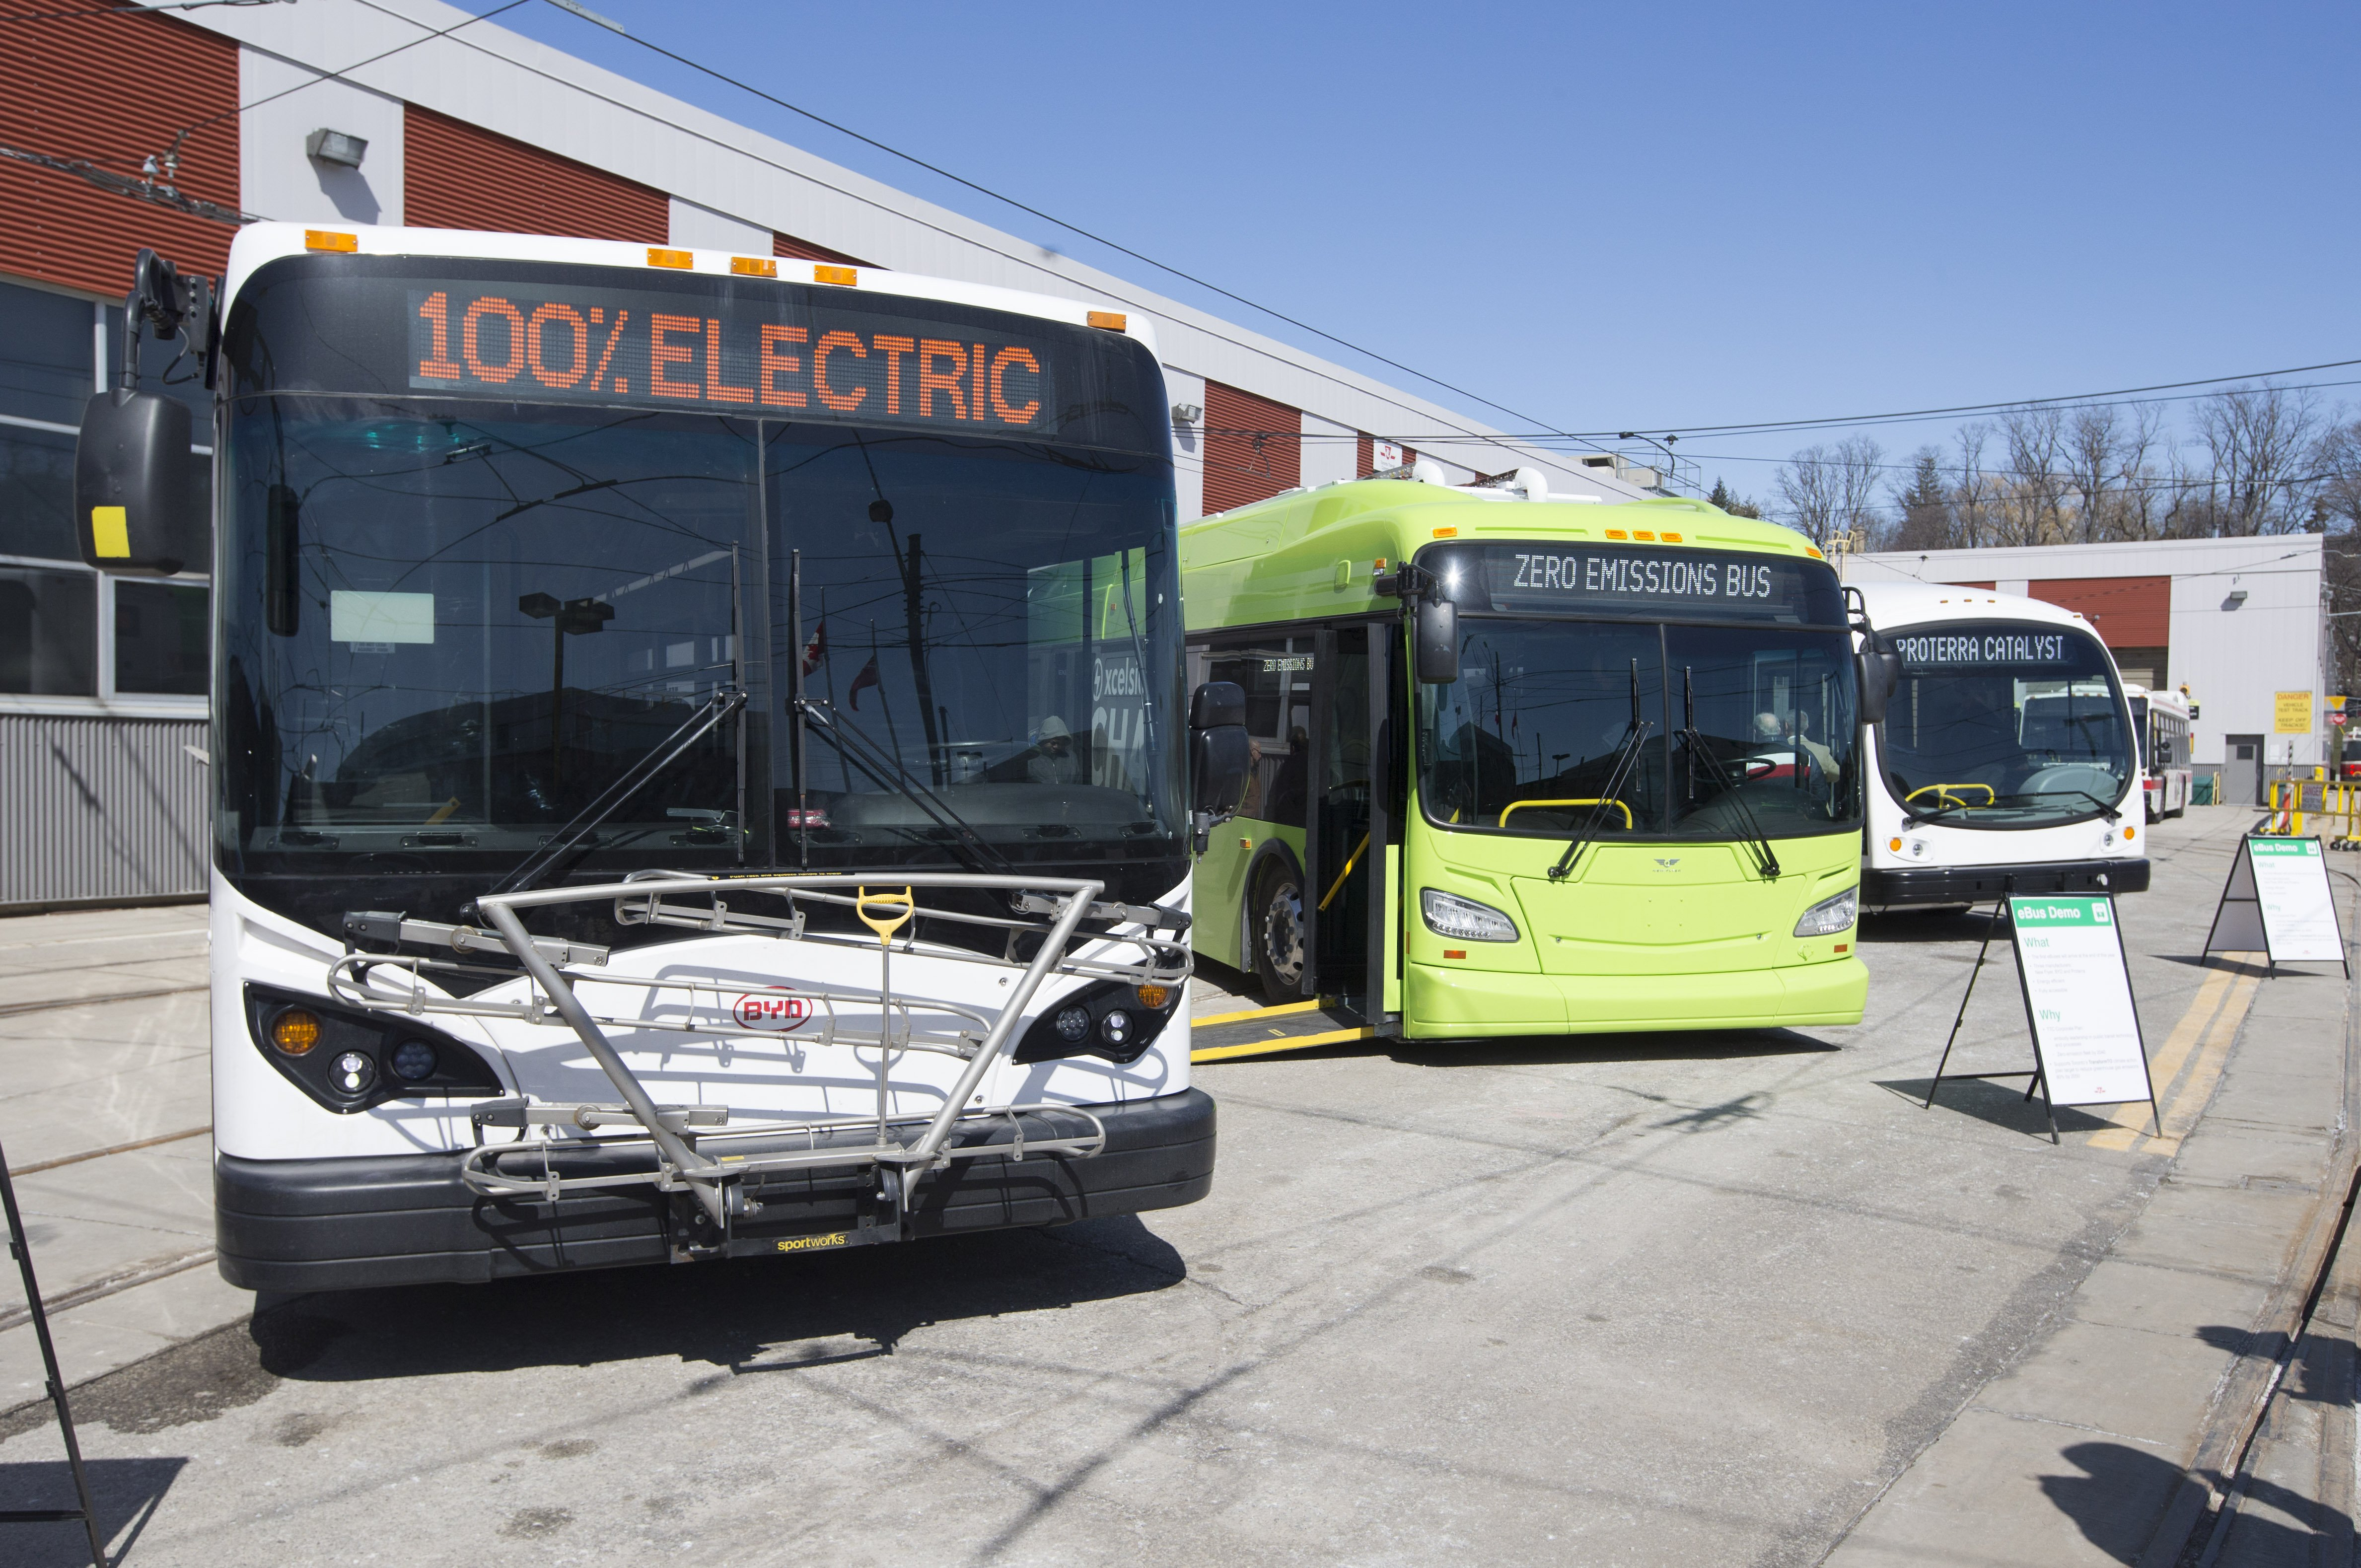 Canada will invest billions to electrify mass transit